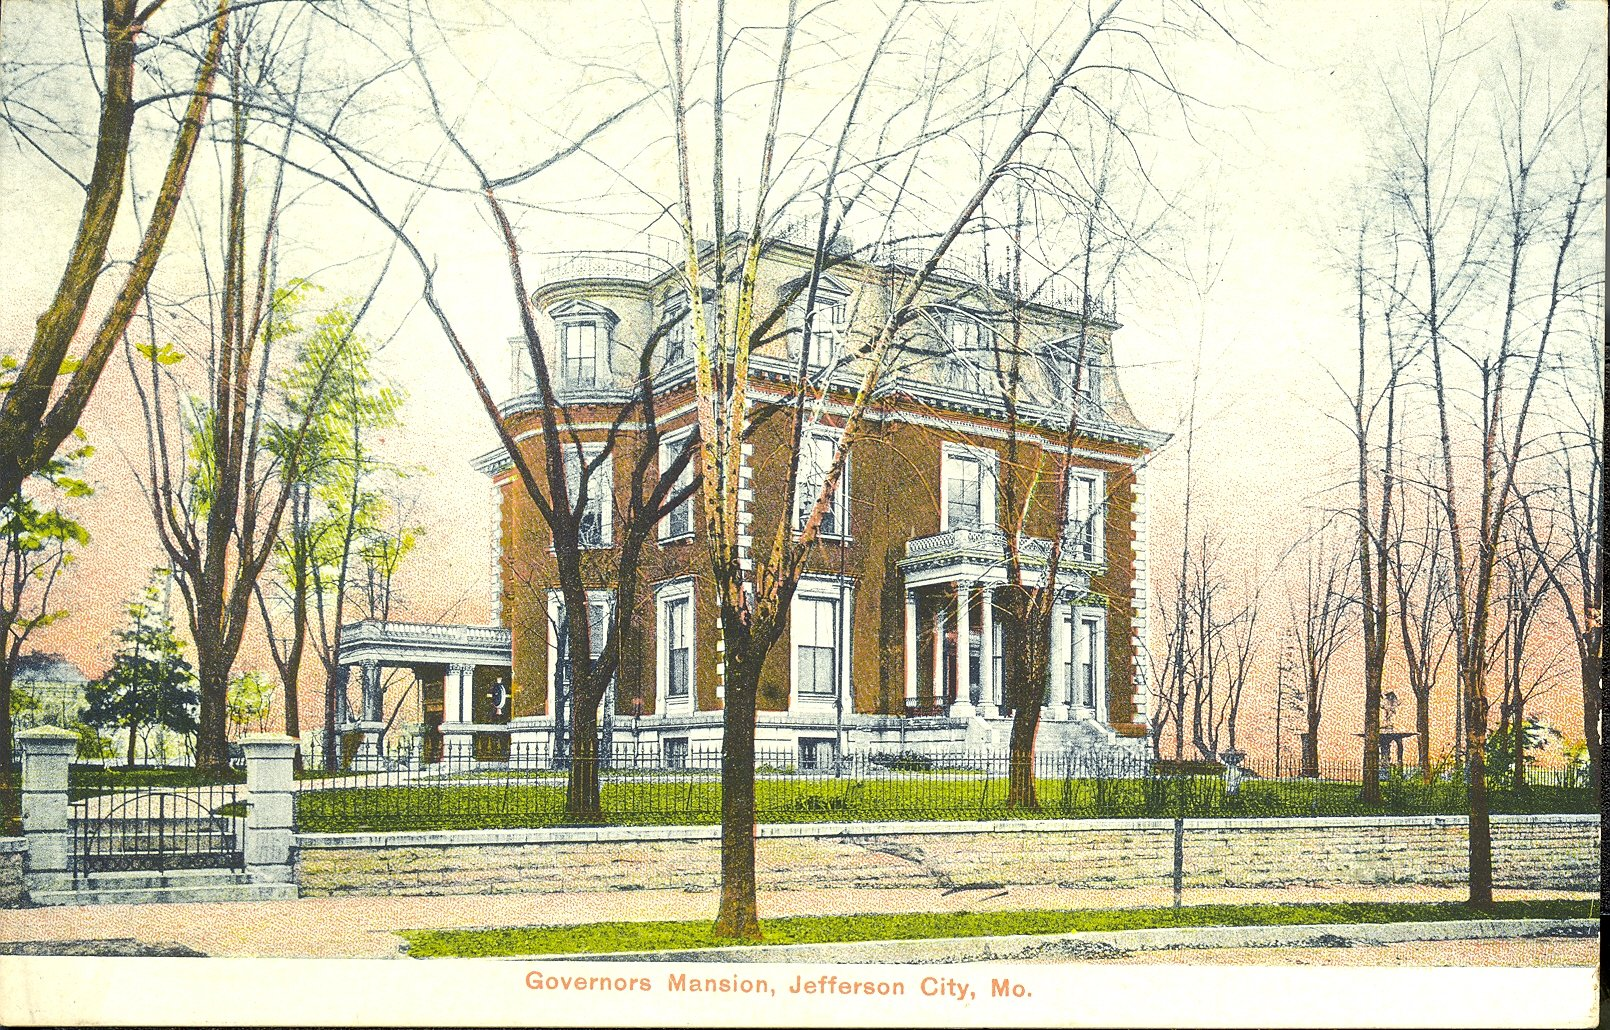 Postcard of the Missouri Governor's Mansion in Jefferson City, c. 1908 Image courtesy of the Missouri State Museum